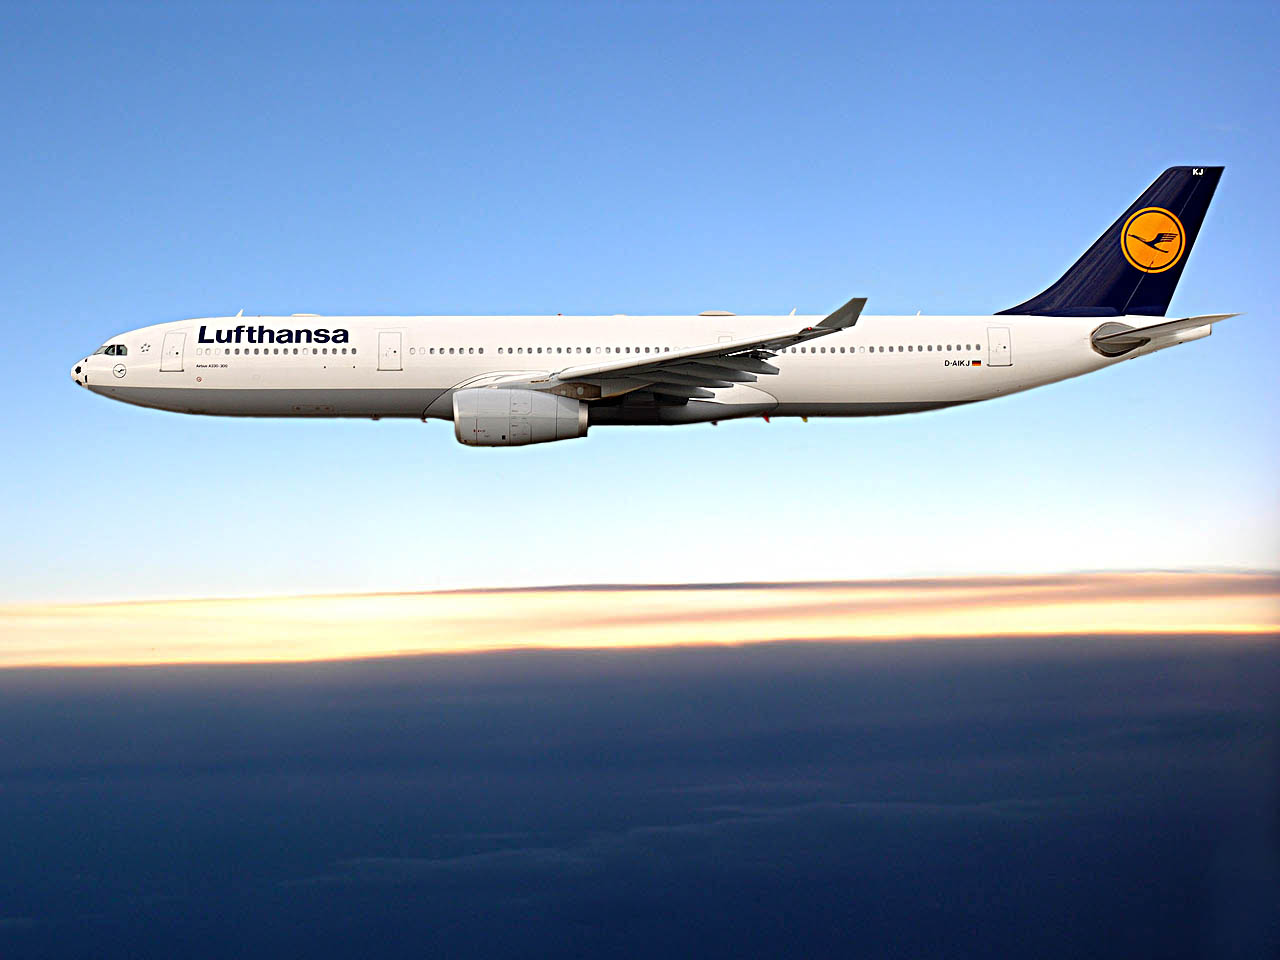 Lufthansa flight passenger door